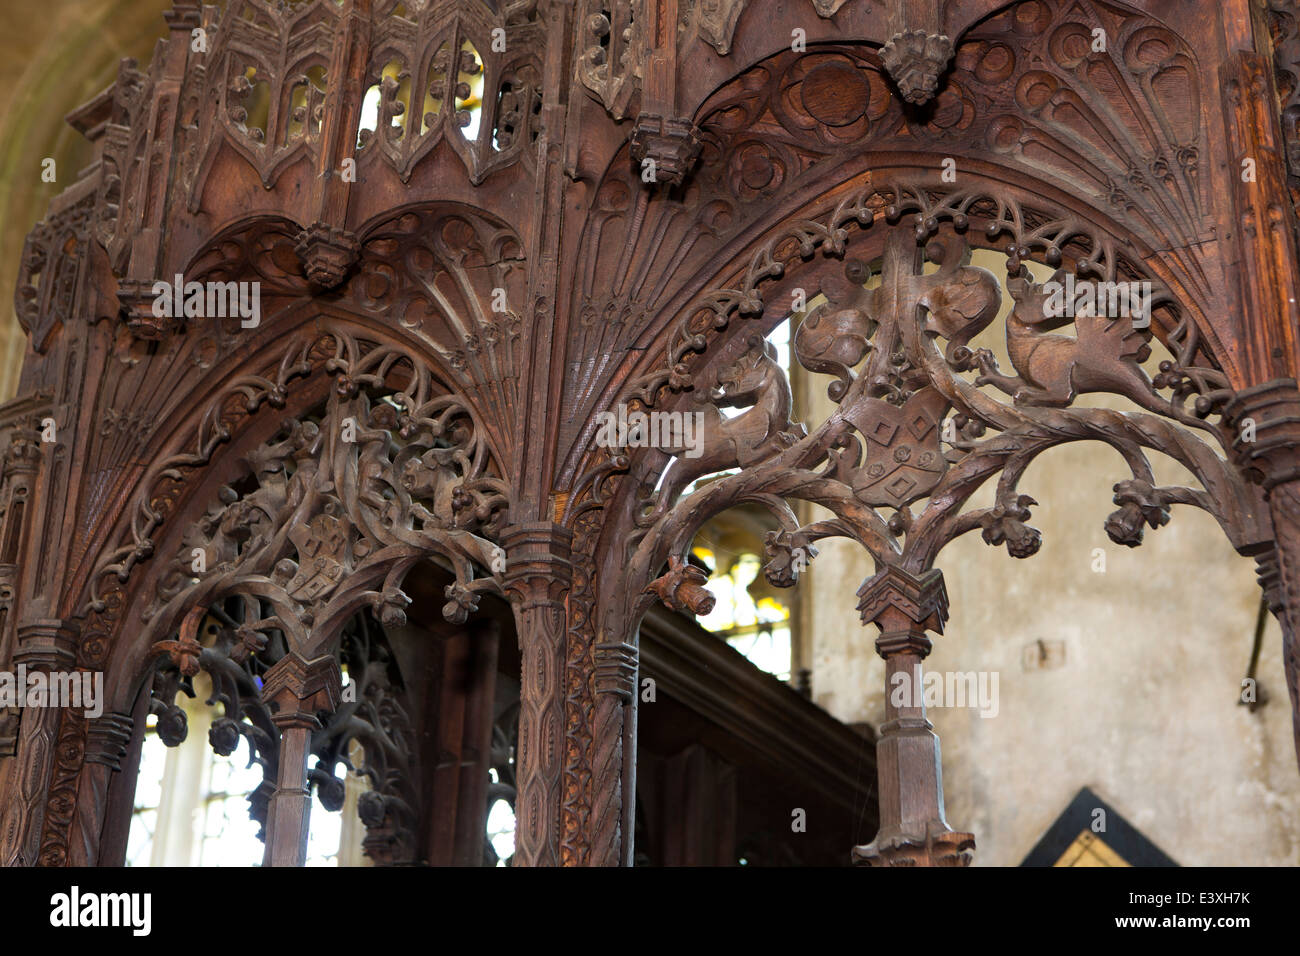 UK England, Suffolk, Lavenham, Parish Church, Thomas Spourne Parclose carving detail - Stock Image